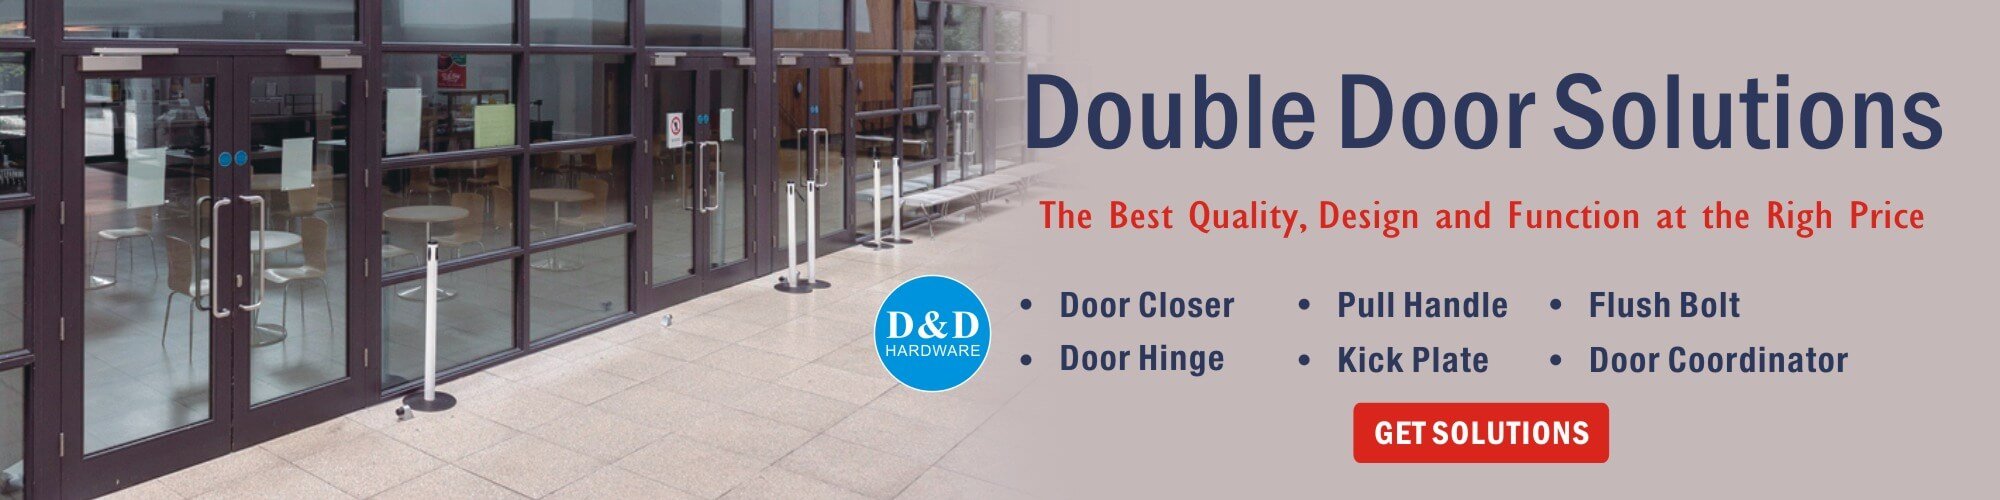 Double-door solution